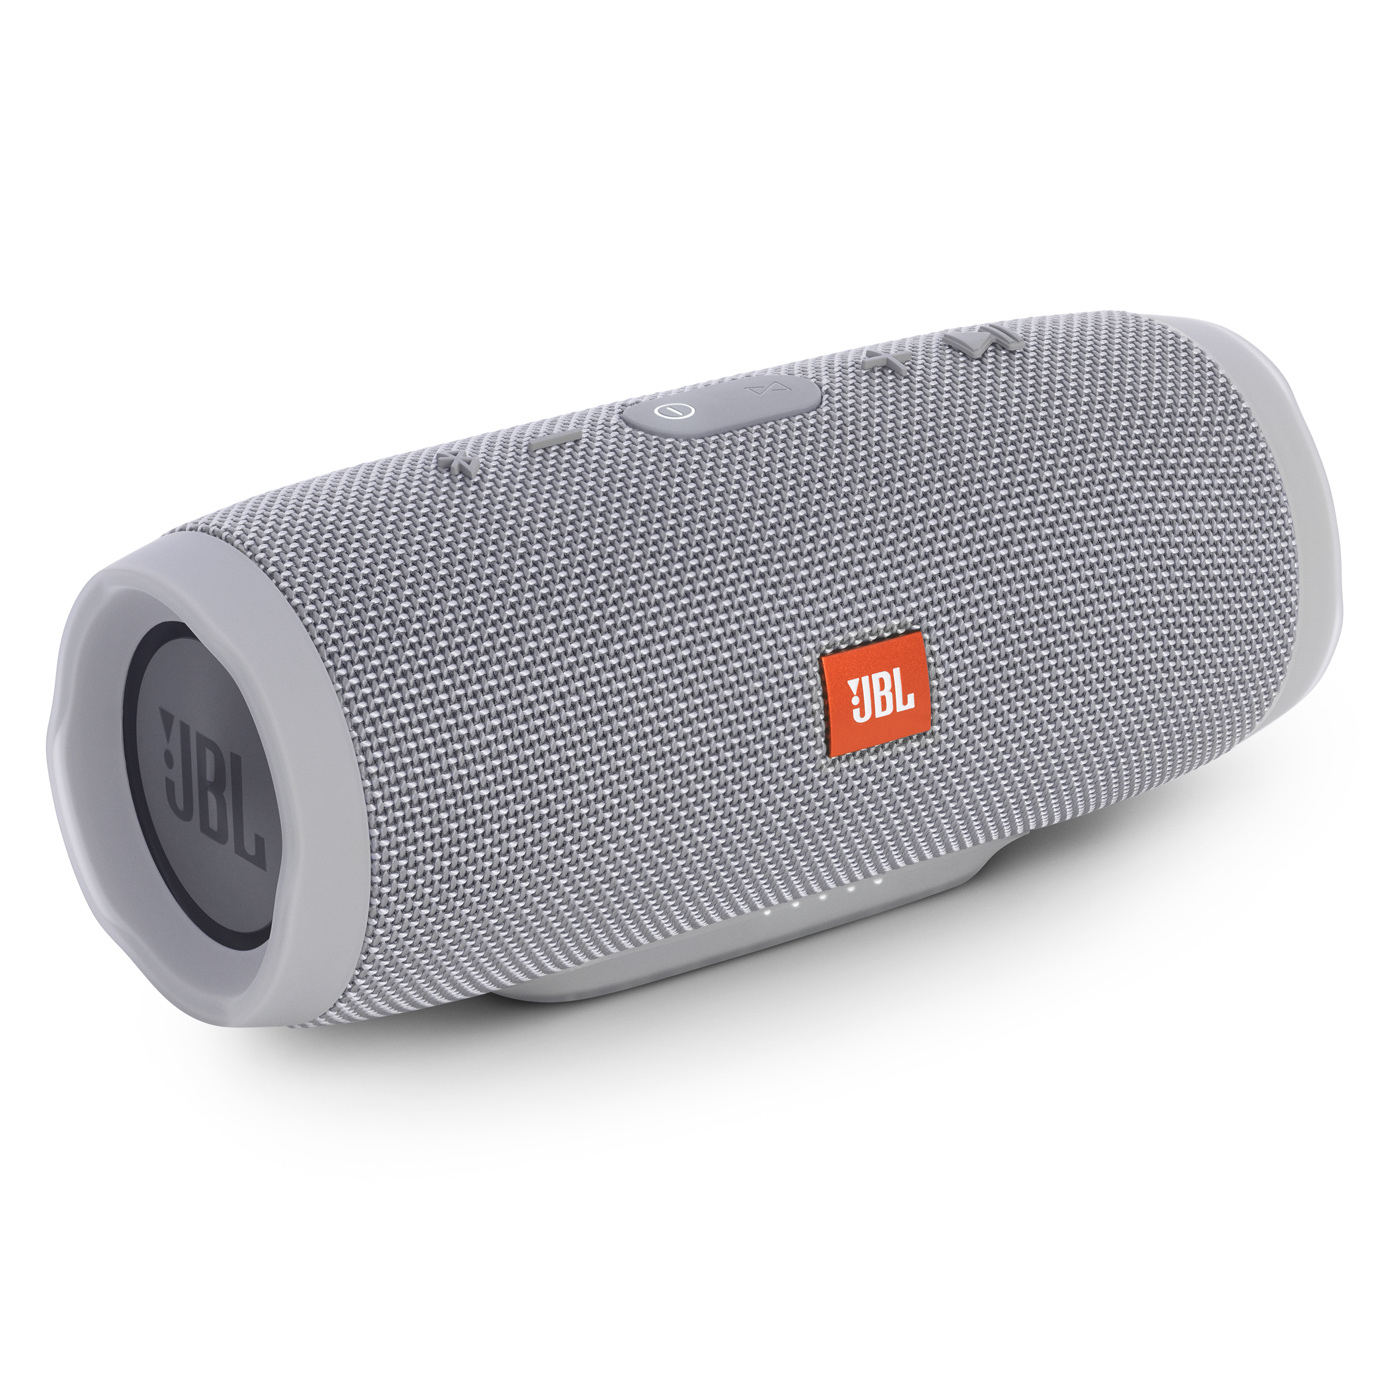 Jbl Charge 3 Bluetooth Portable Speaker Price From Rs 9700 Unit Onwards Specification And Features